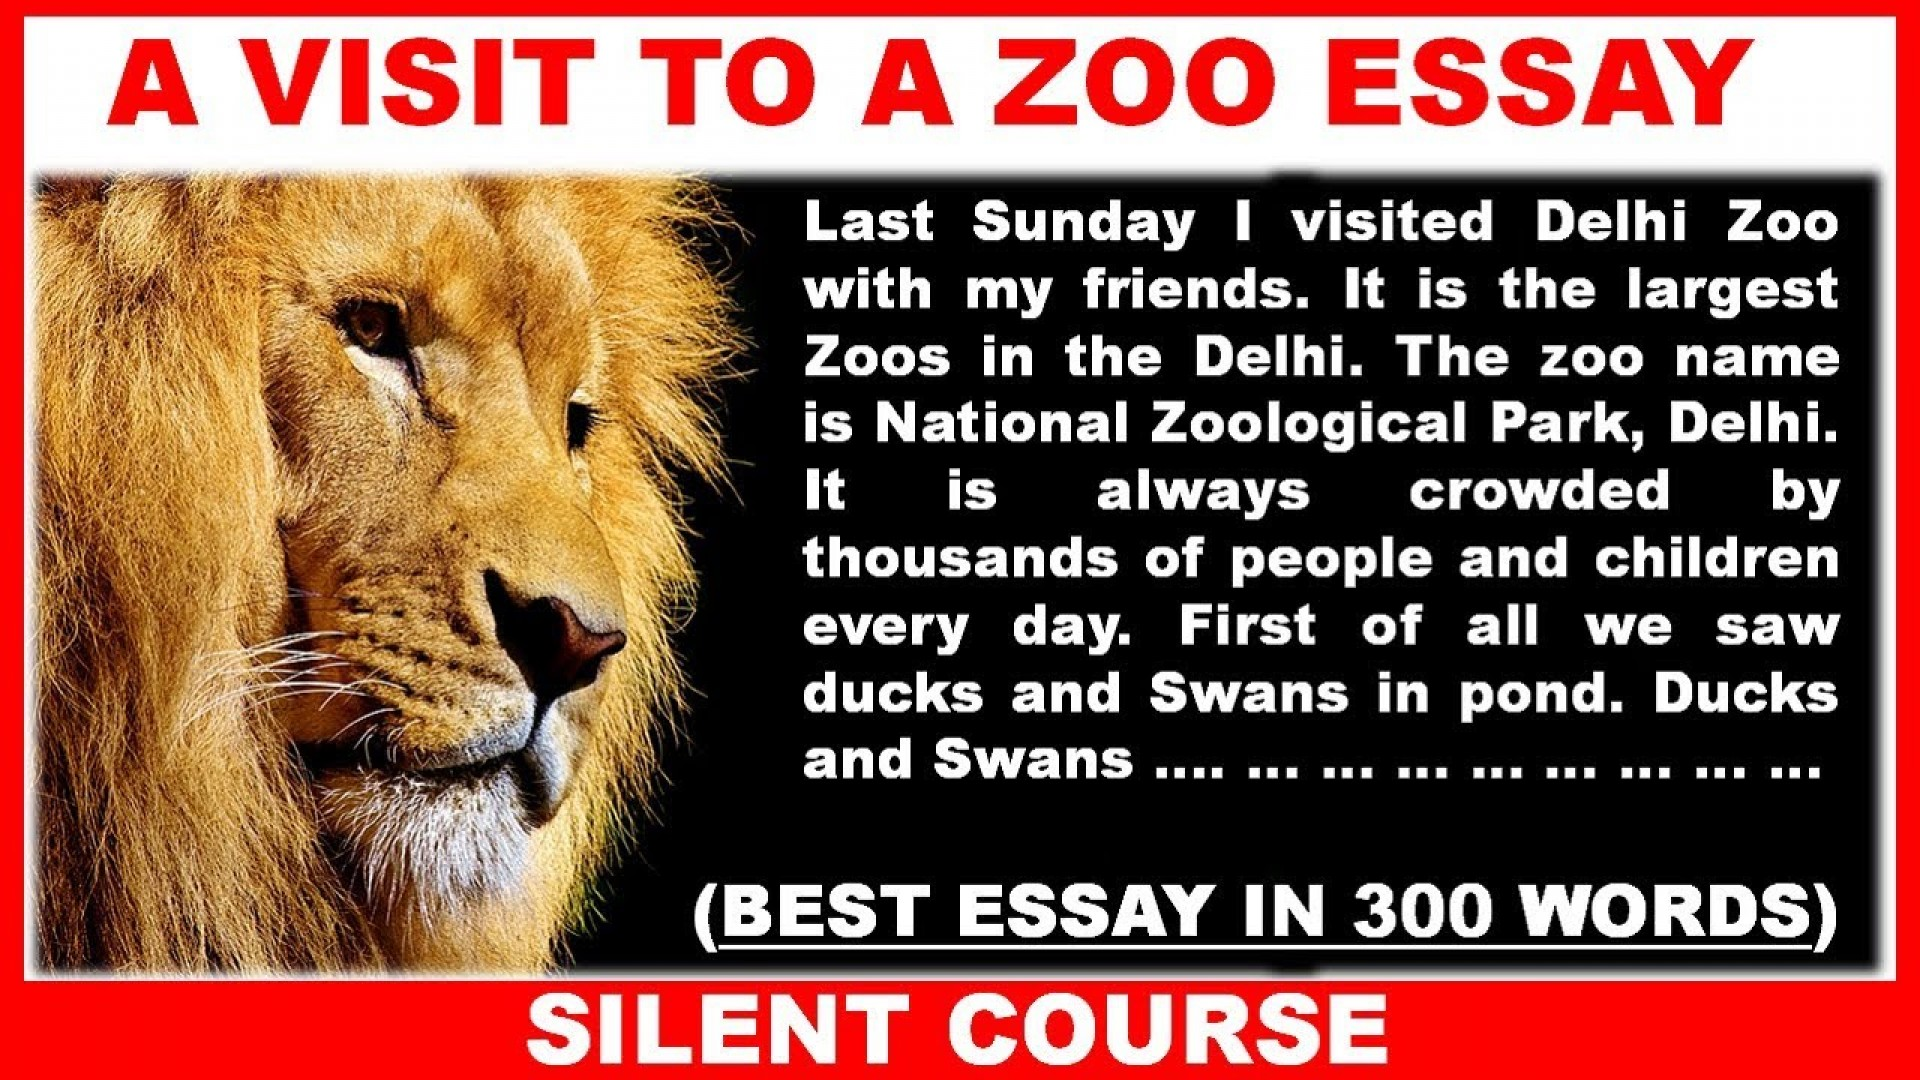 001 Essay Example Maxresdefault On Marvelous Zoo Visit To A For Class 10 Why Zoos Are Bad 1920